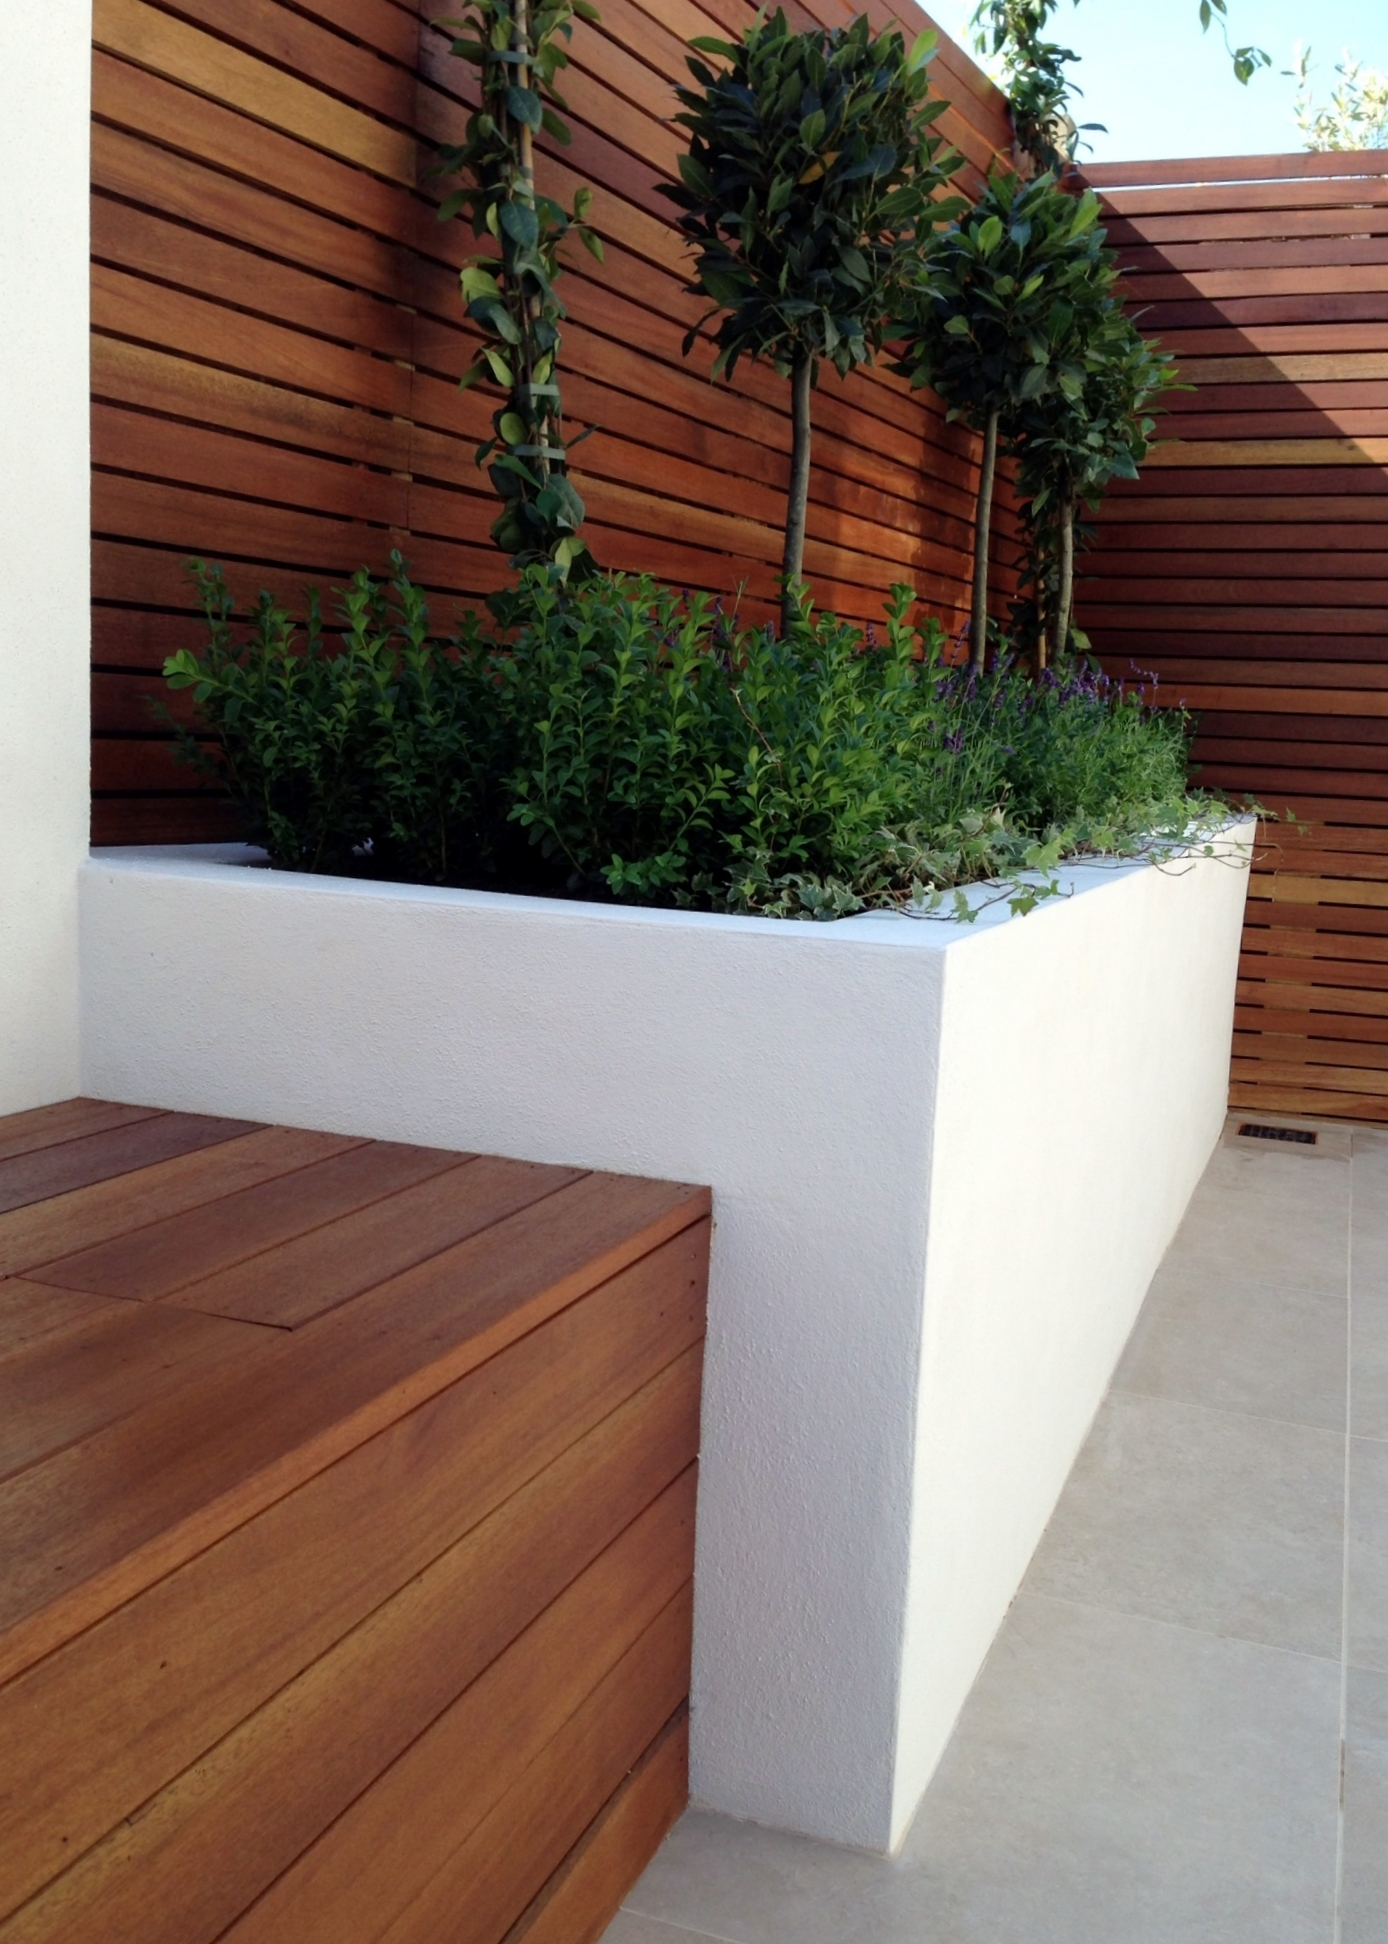 Small Modern Garden Design - London Garden Blog on Landscape Garden Designs For Small Gardens id=81144